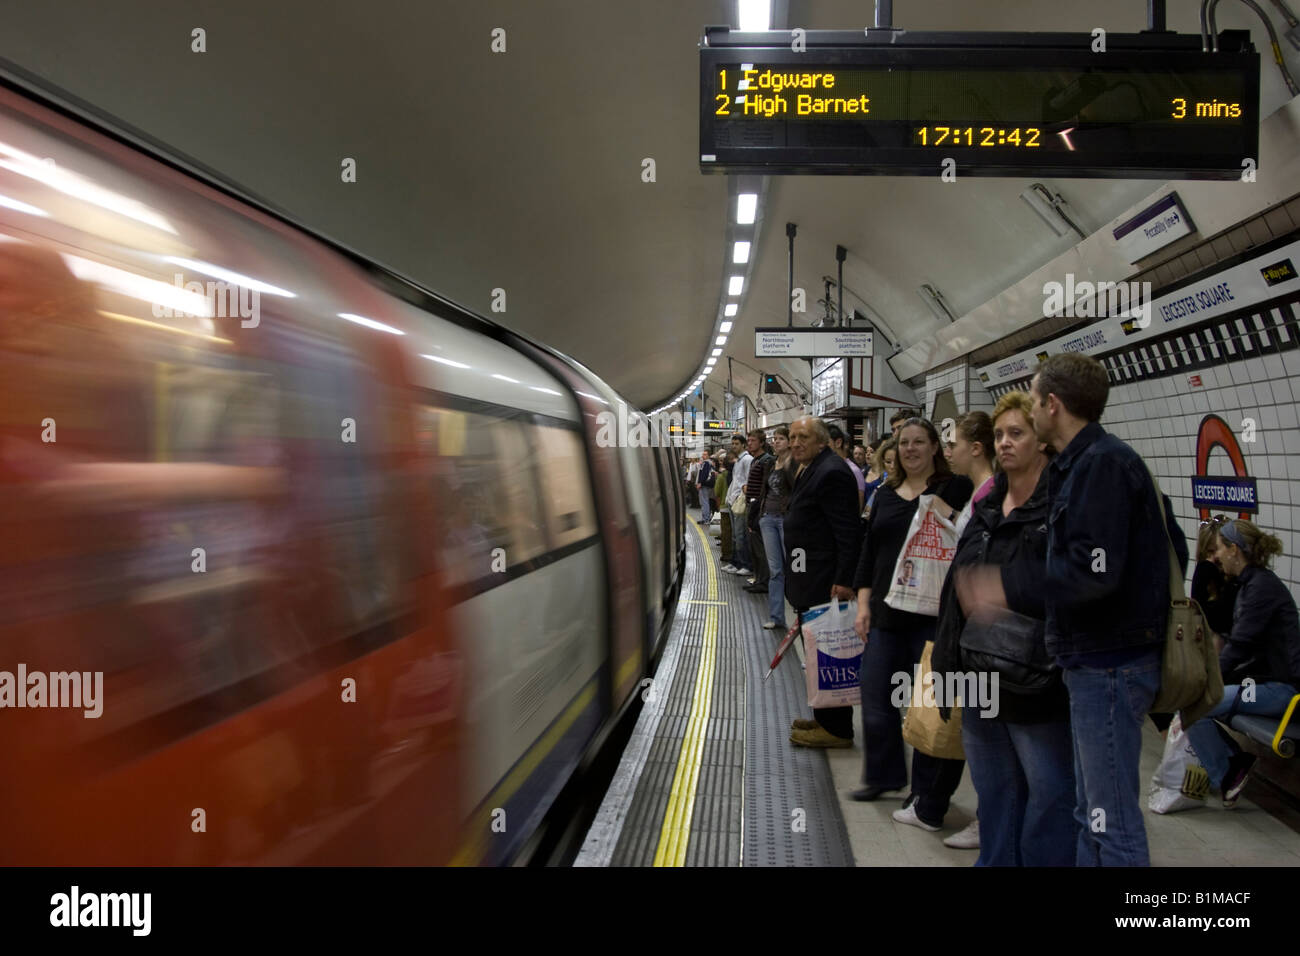 Northern Line - Leicester Square Station - London Underground - Stock Image